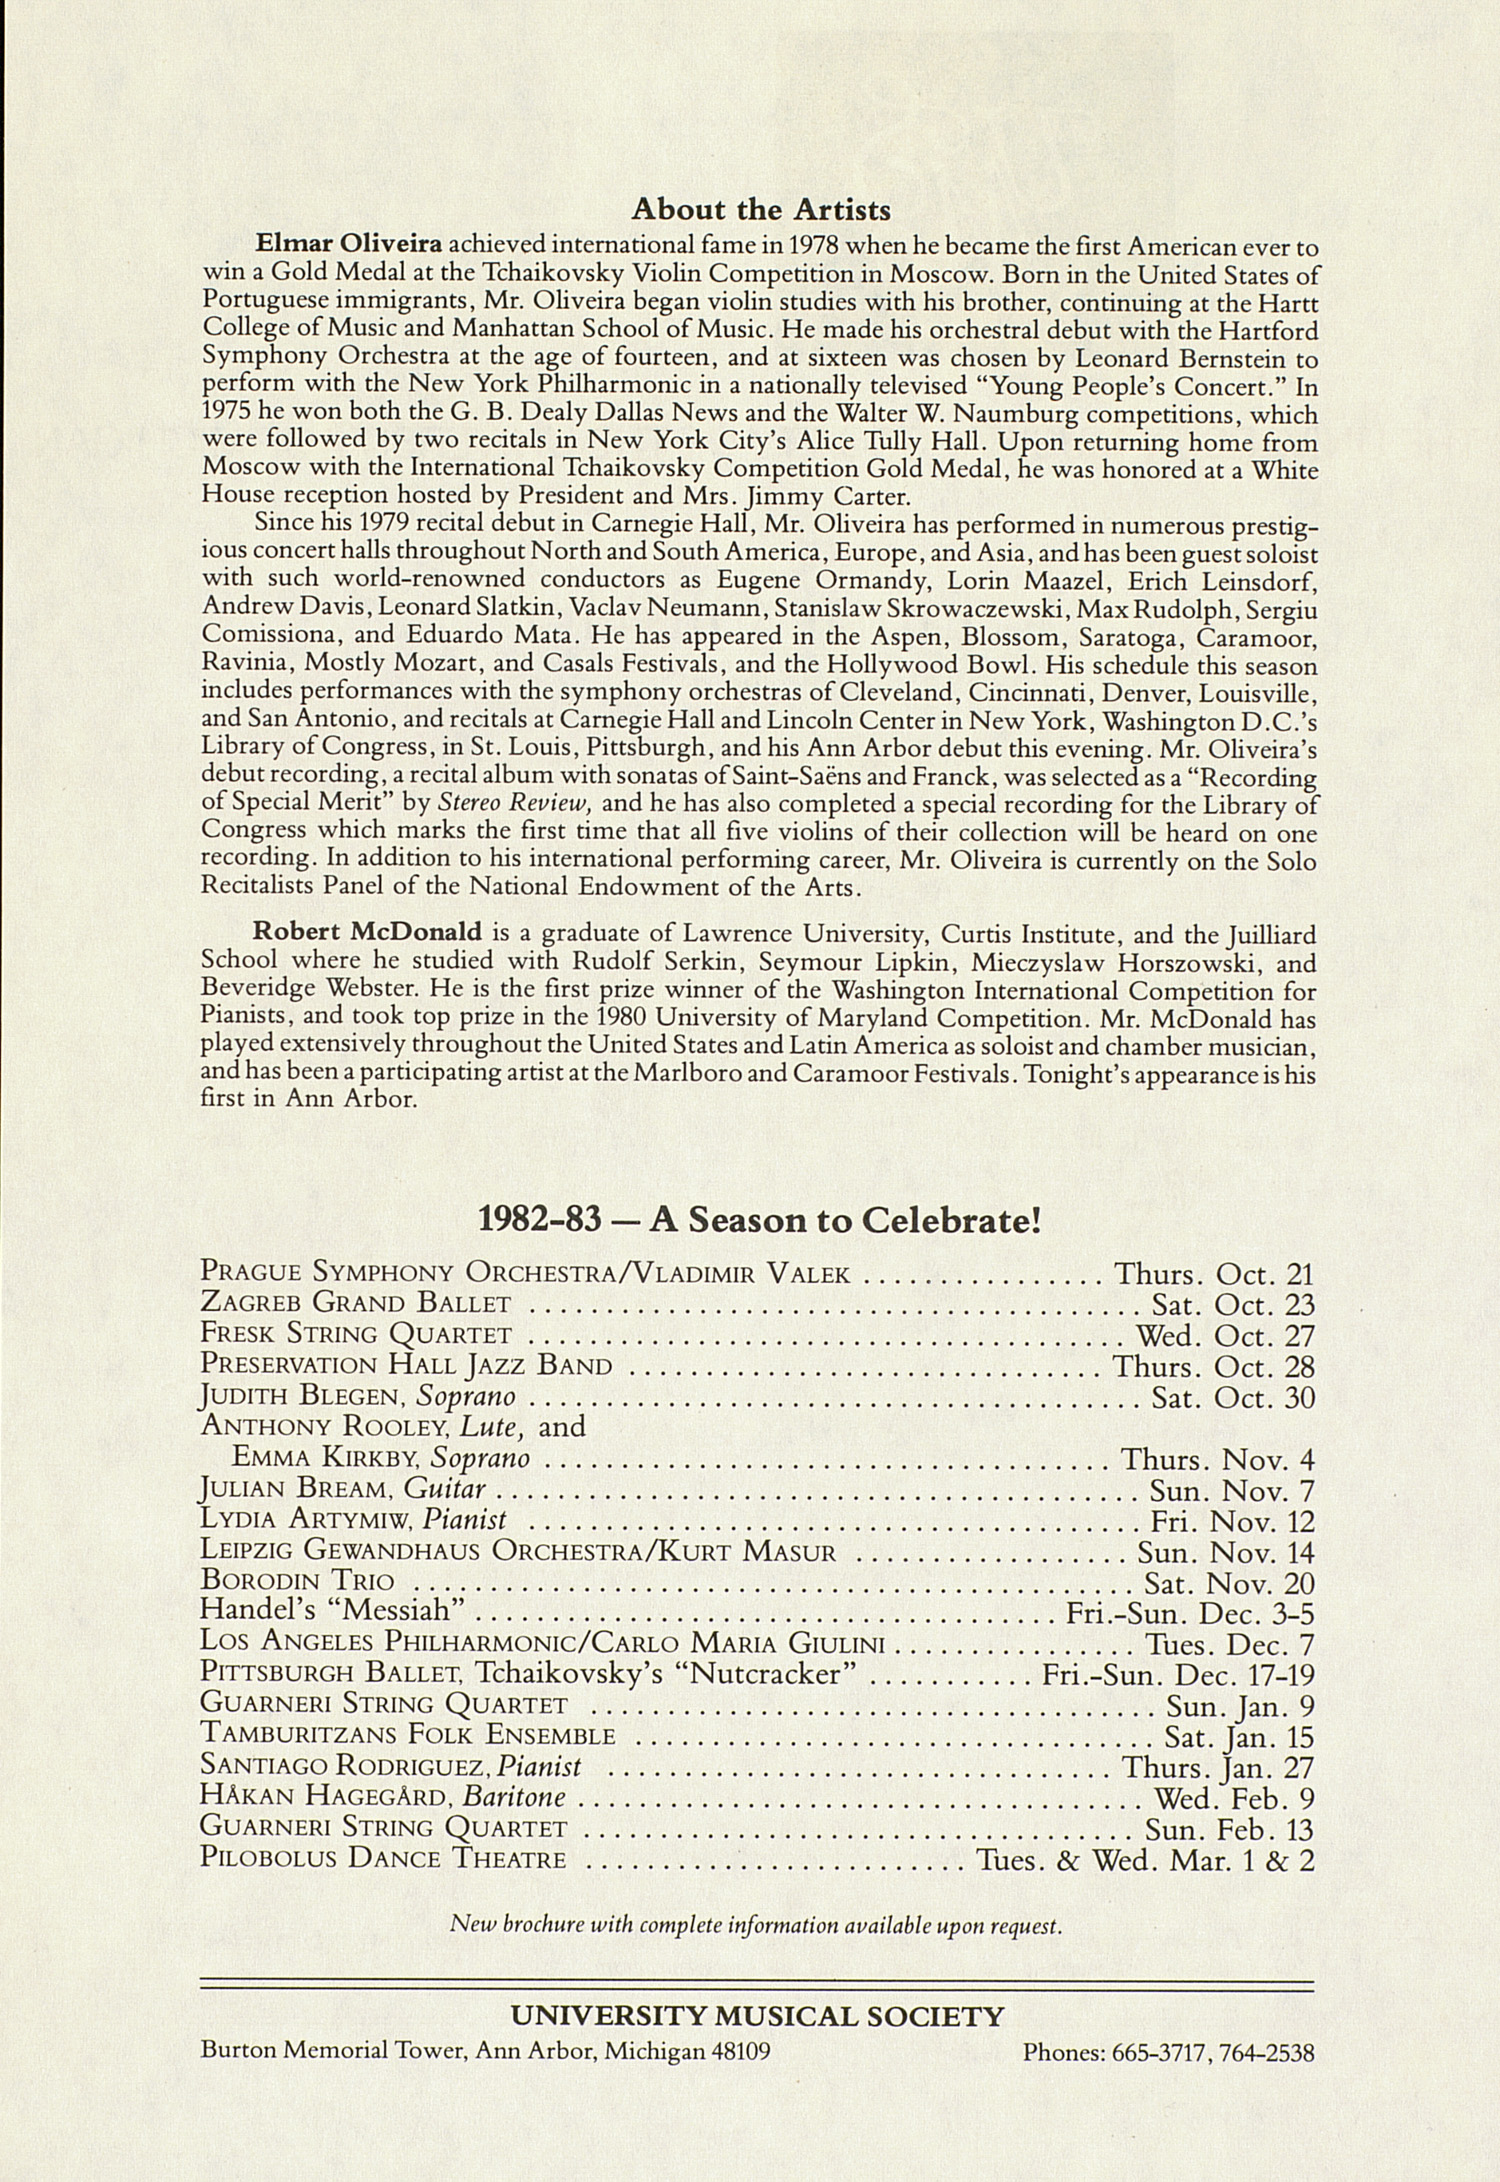 UMS Concert Program, October 18, 1982: International Presentations Of Music & Dance --  image